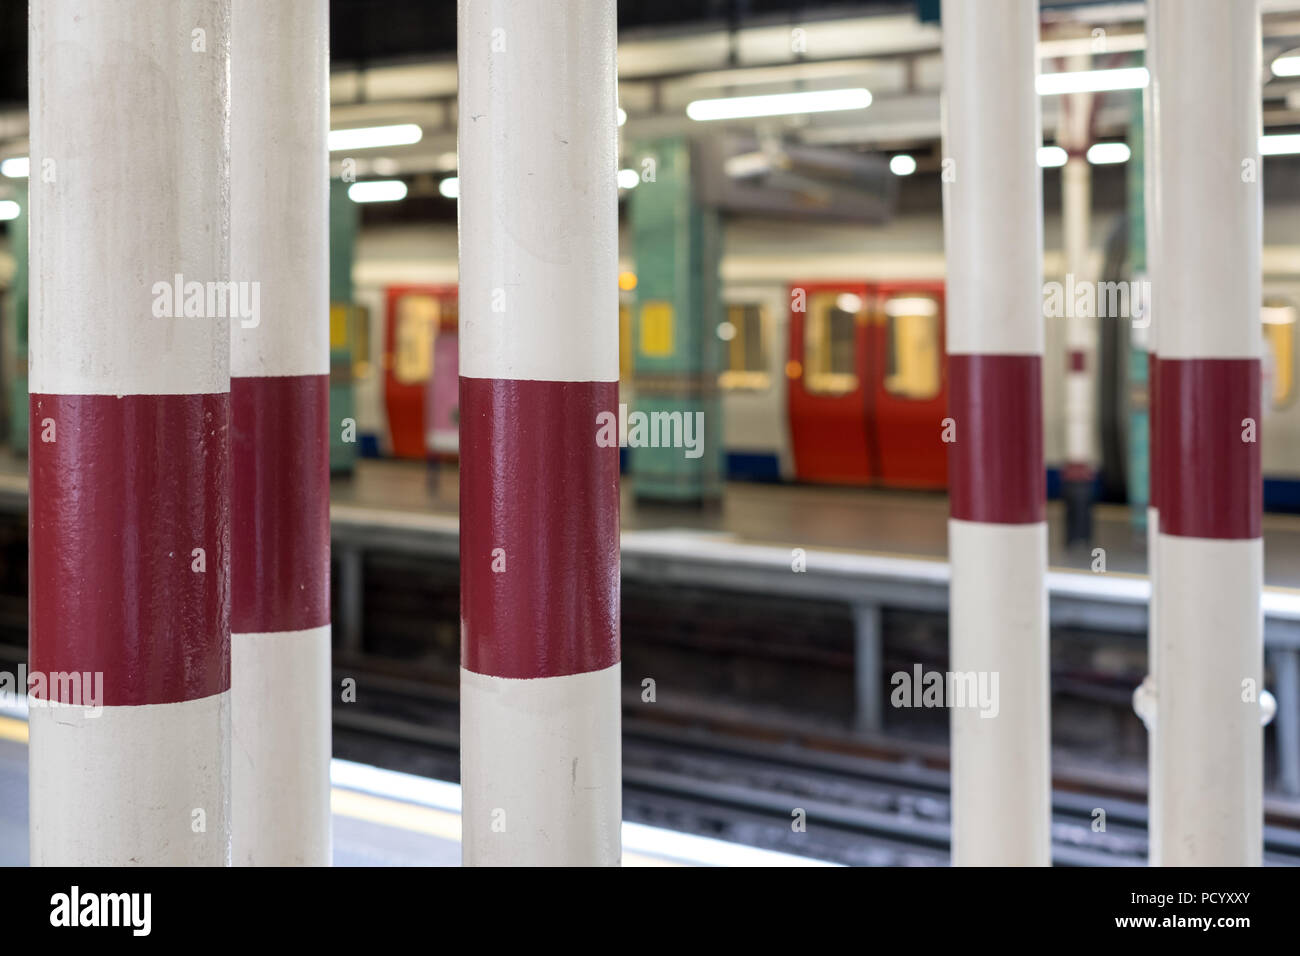 Platform at Aldgate Underground Station, London showing painted pillars and train in soft focus waiting on platform in the background. - Stock Image